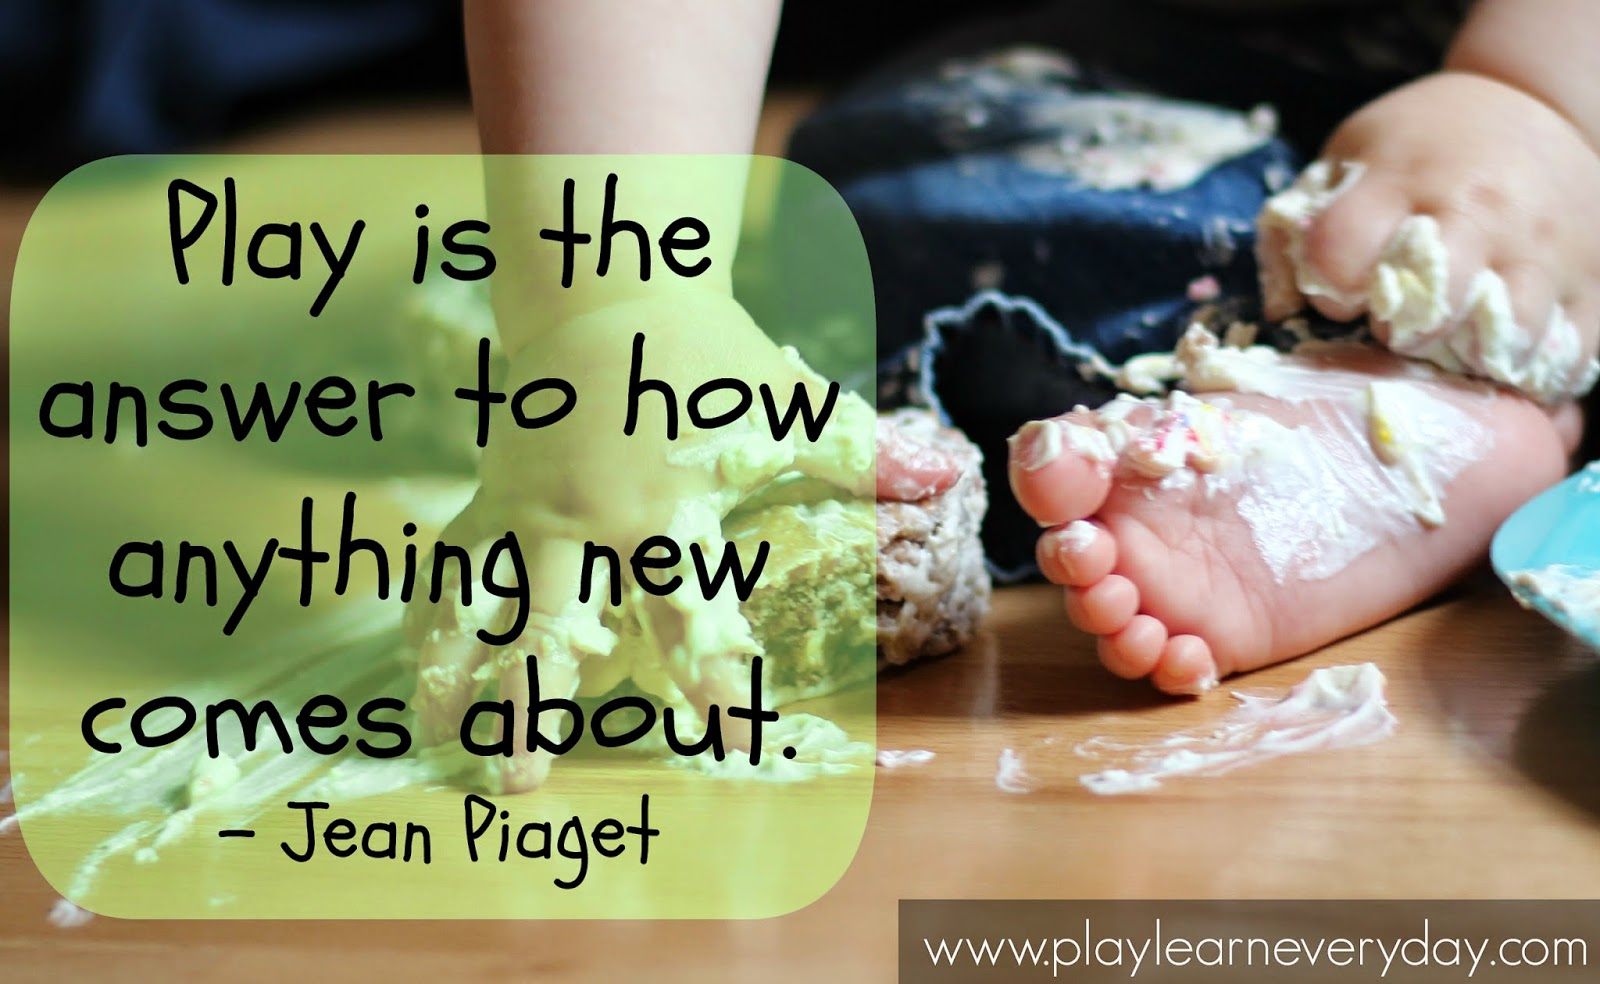 play based learning quote - piaget